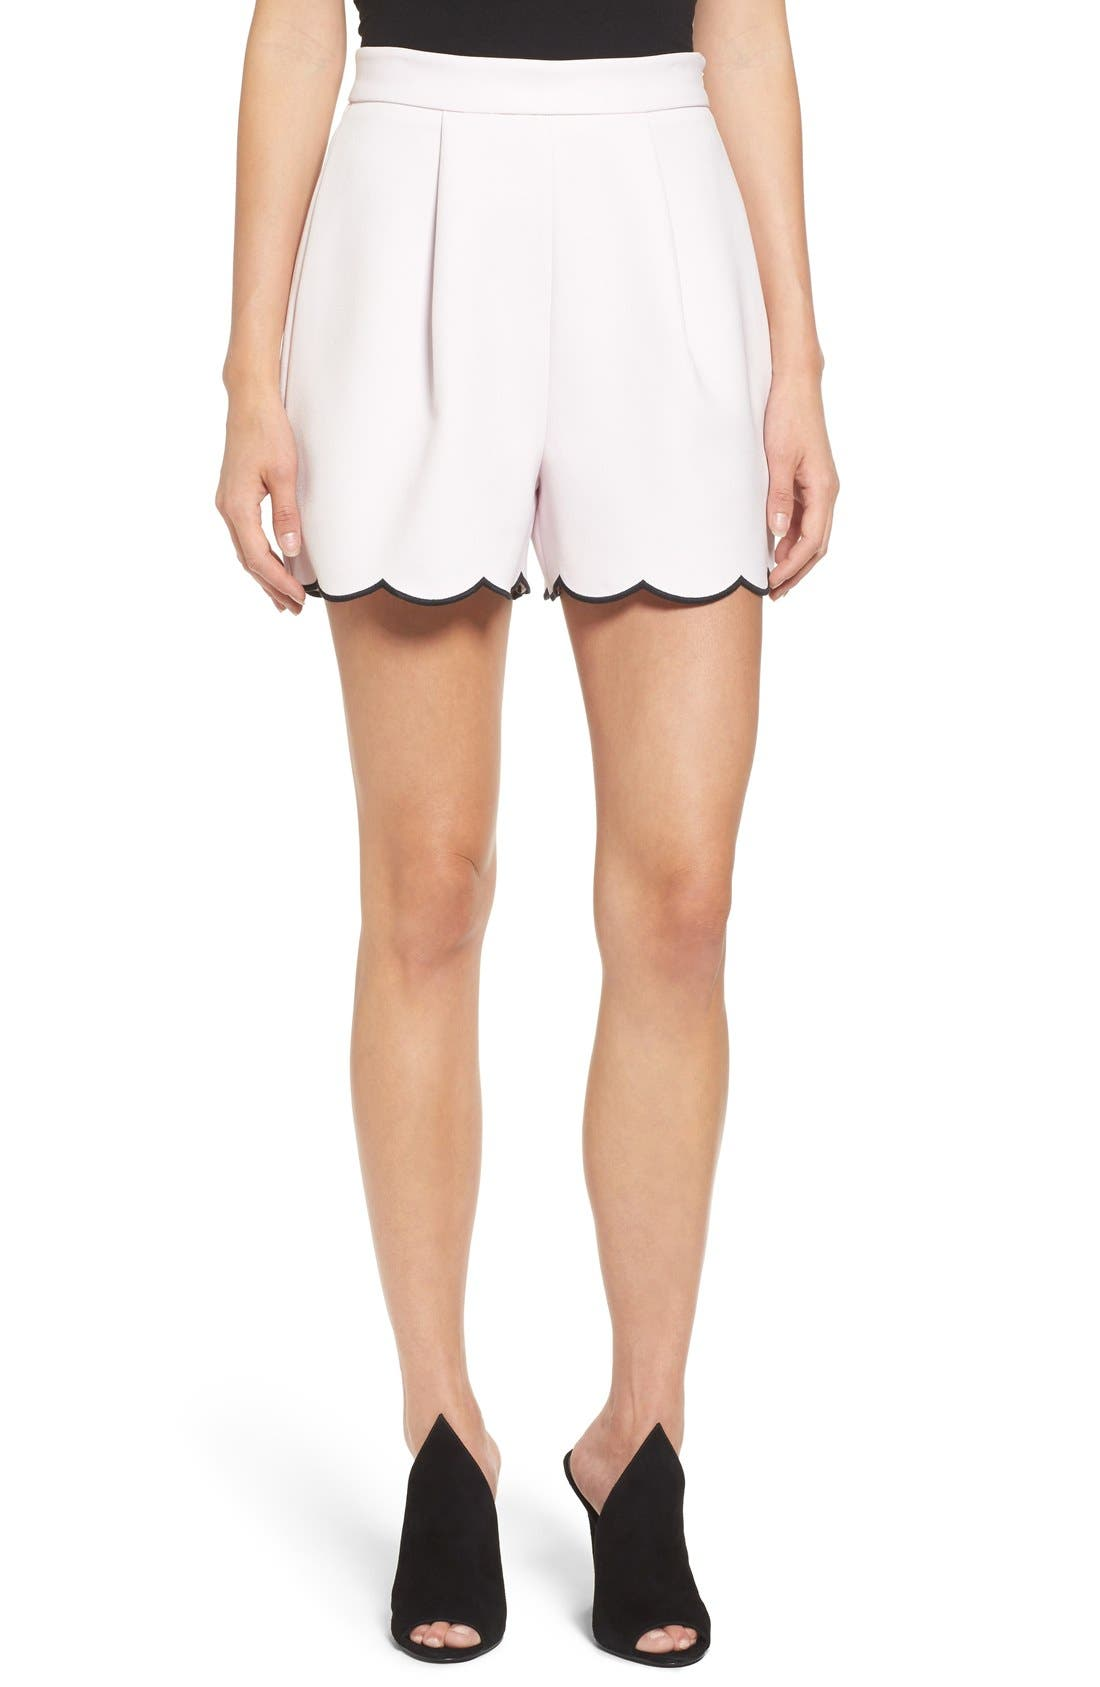 Alternate Image 1 Selected - KENDALL + KYLIE Scallop Hem High Waist Shorts